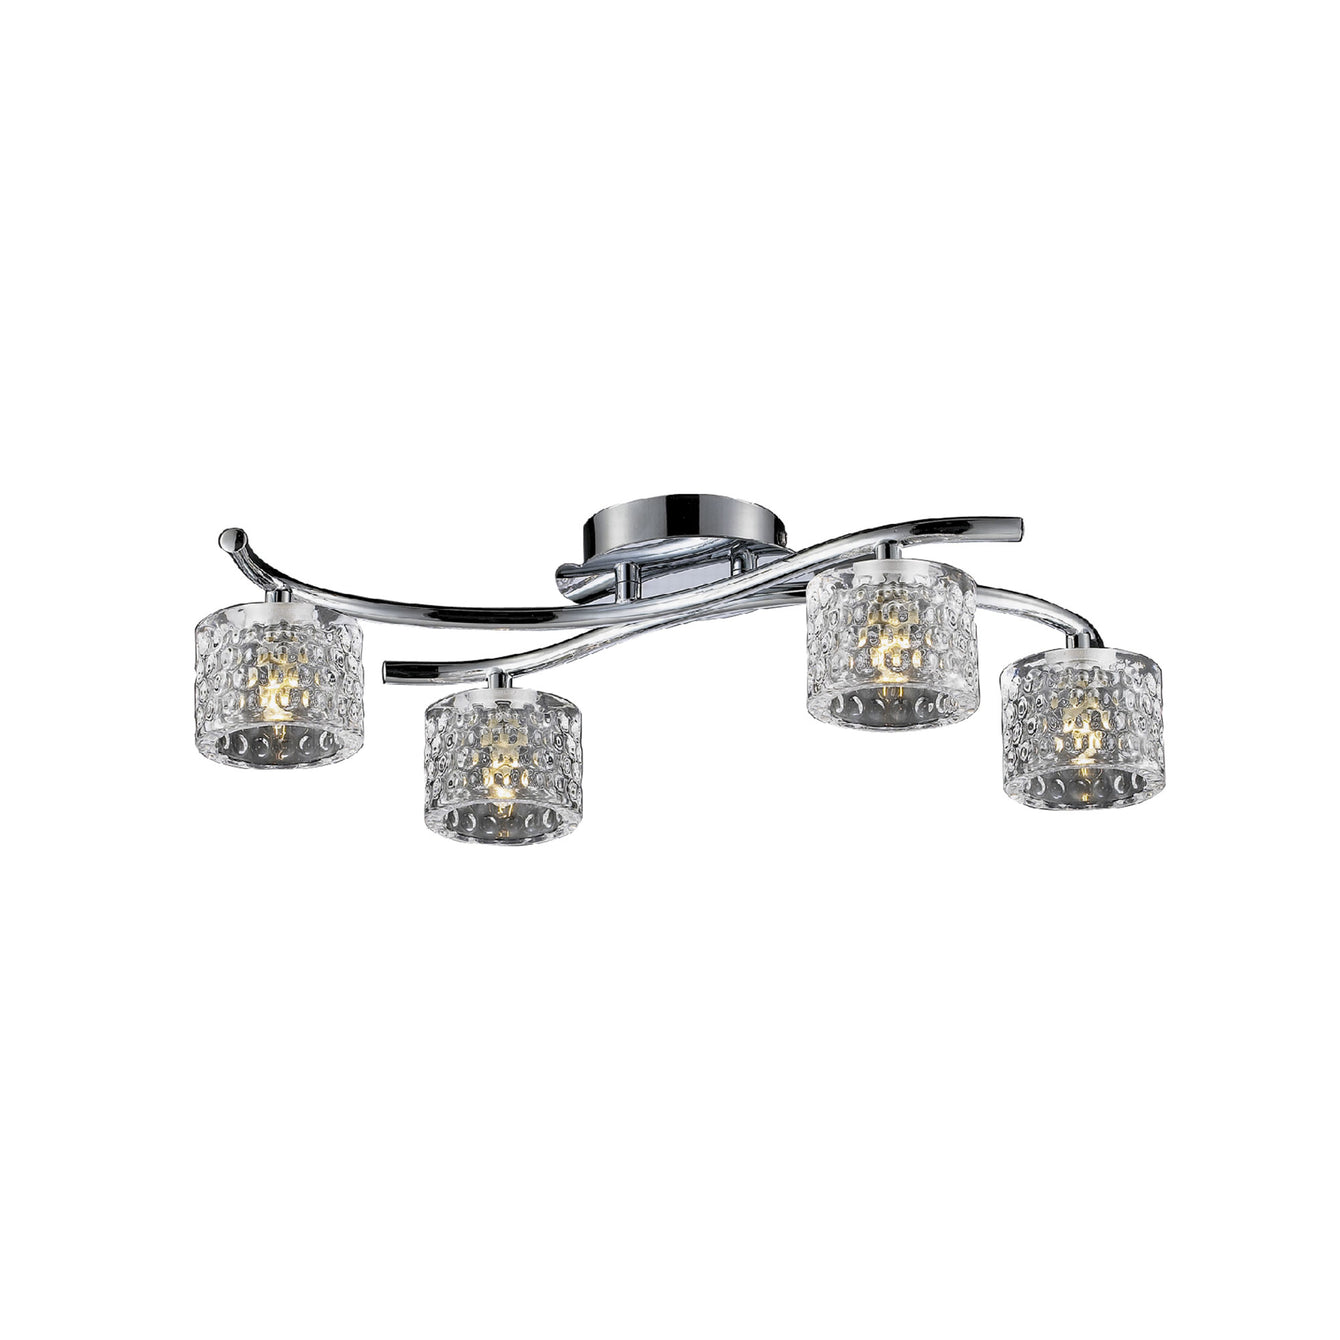 Finsbury 4, 5 and 8 Arm Pendant LED Light - Buy It Better 4 Arm